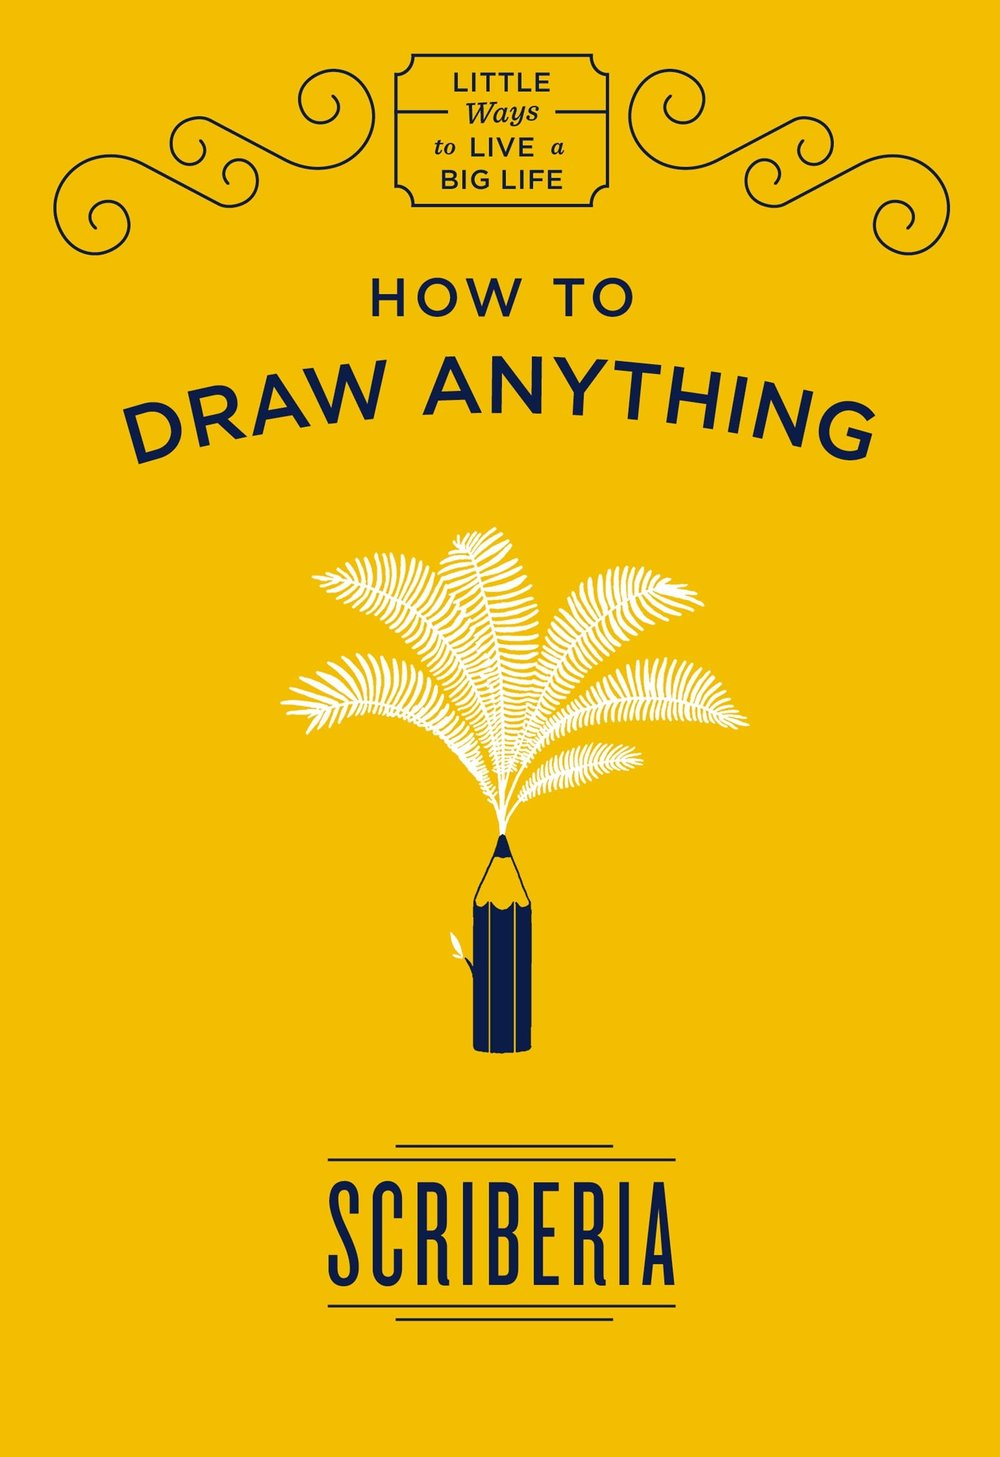 How to draw anything, by Scriberia (Quercus)